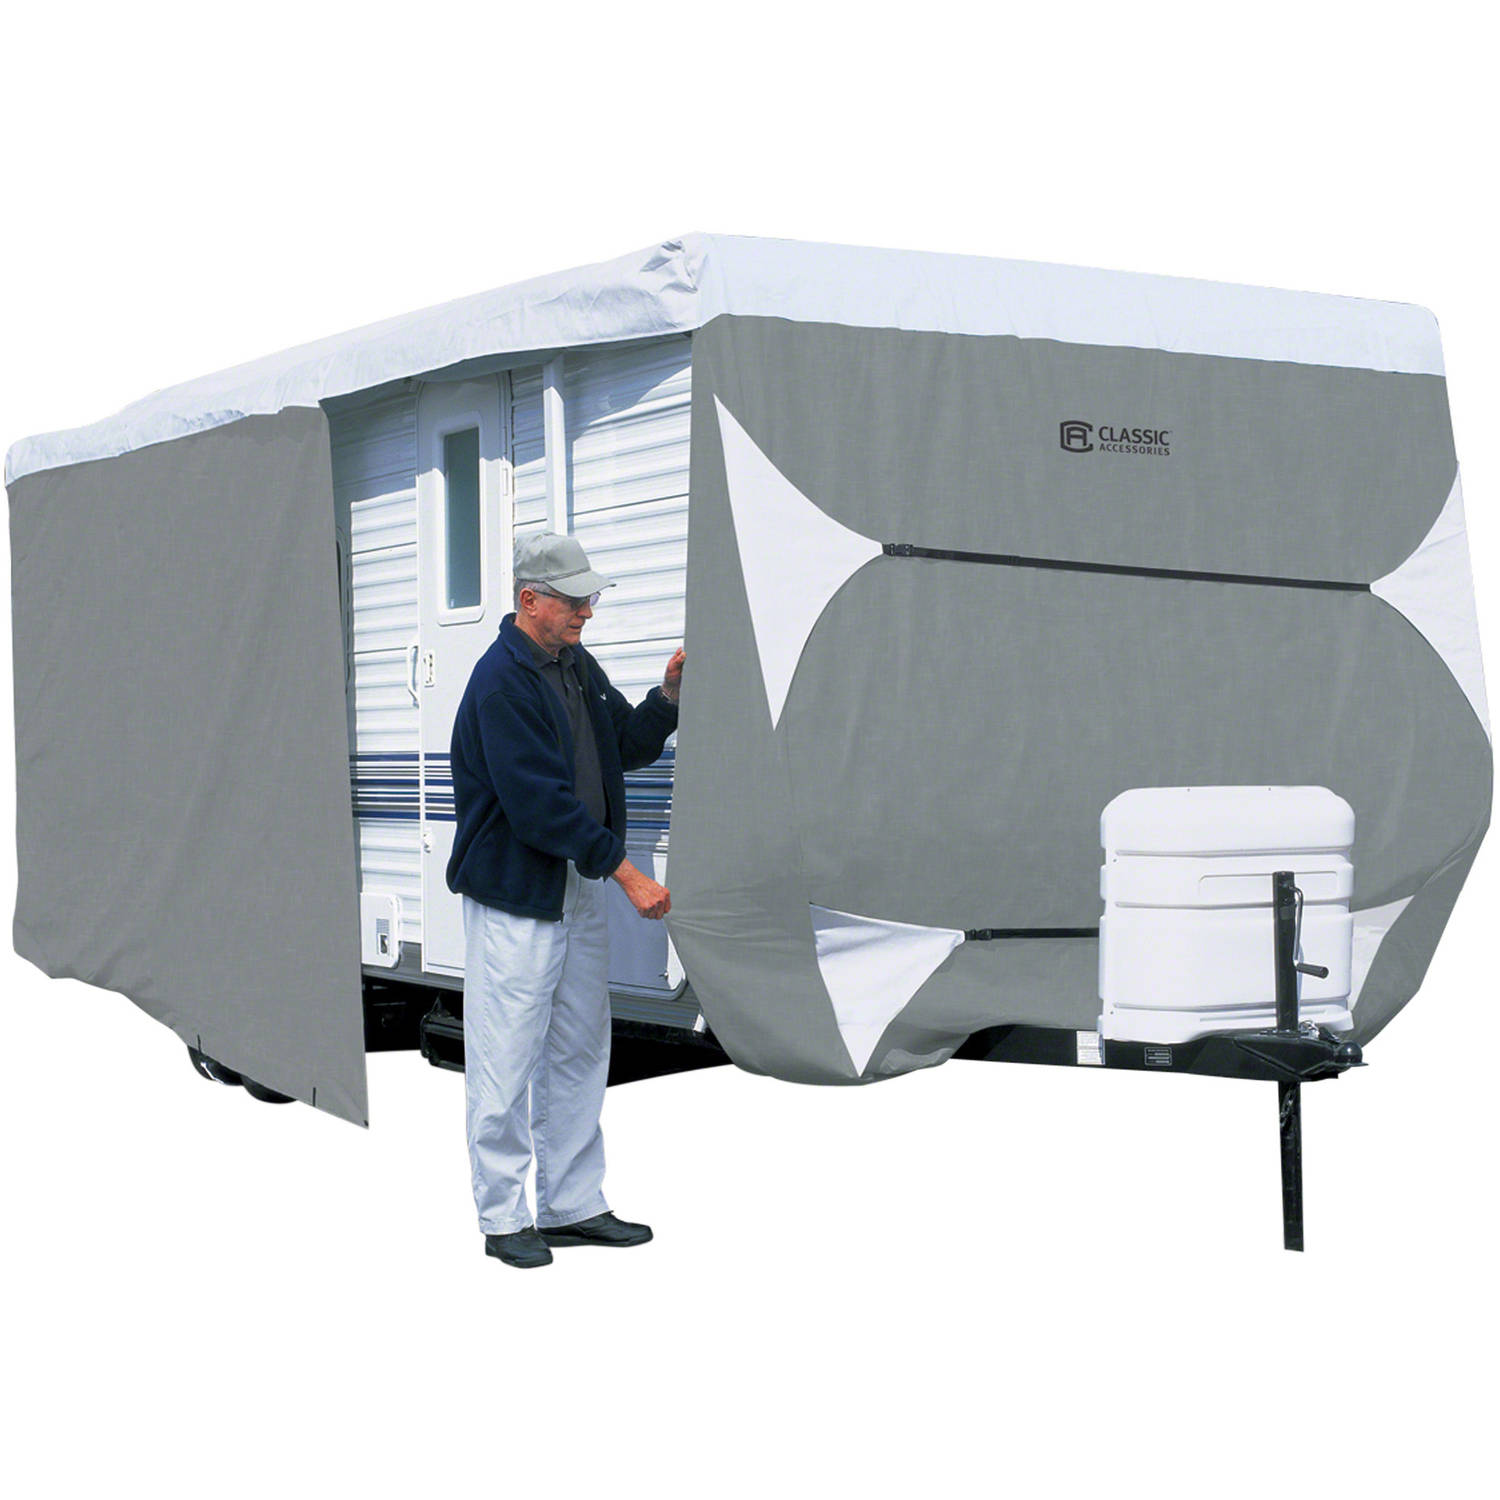 Classic Accessories PolyPRO 3 Travel Trailer & Toy Hauler Cover, Grey